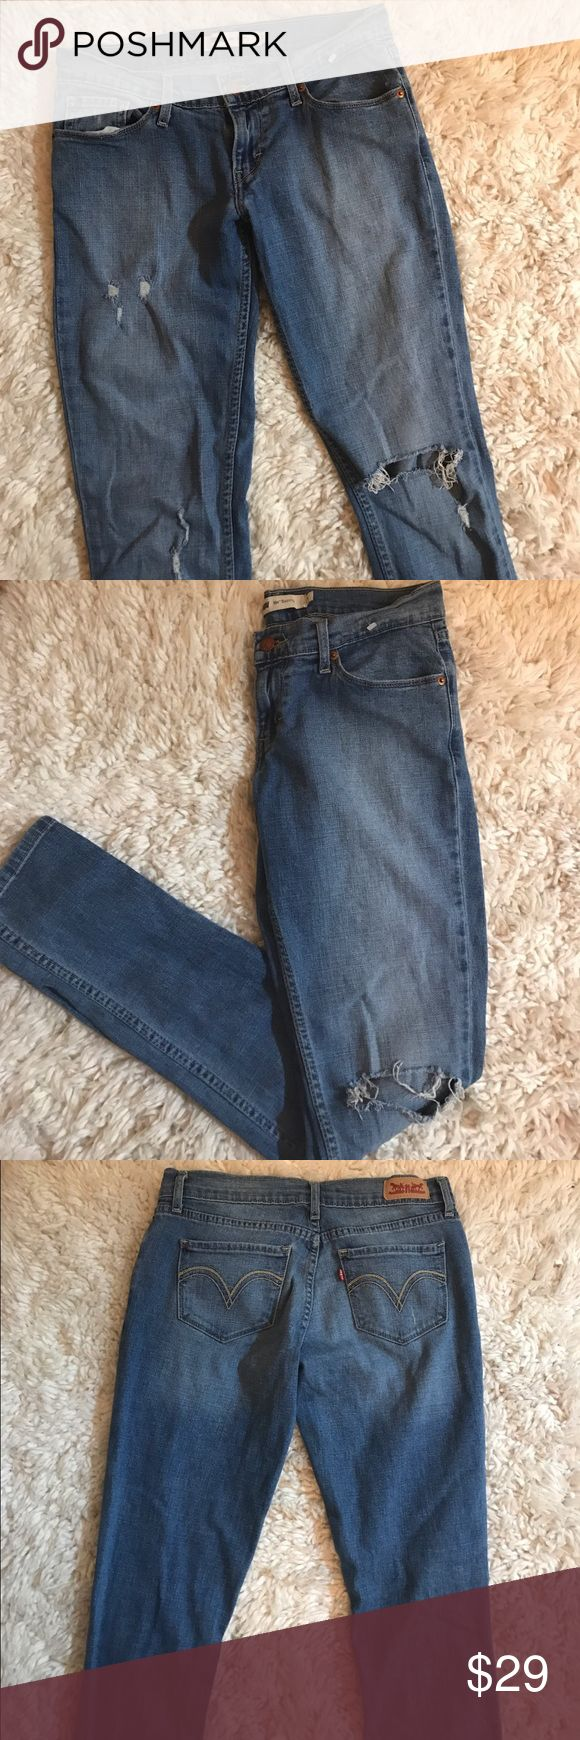 FINAL SALE Levi's 524 Skinny Jean NWOT never washed or worn, smoke and pet free home. Medium wash ripped skinny jeans from Levi's. Stretchy material. SIZE 3. Fits size 26-27. First picture shows all the rips it has. Make an offer!💕 Levi's Jeans Skinny